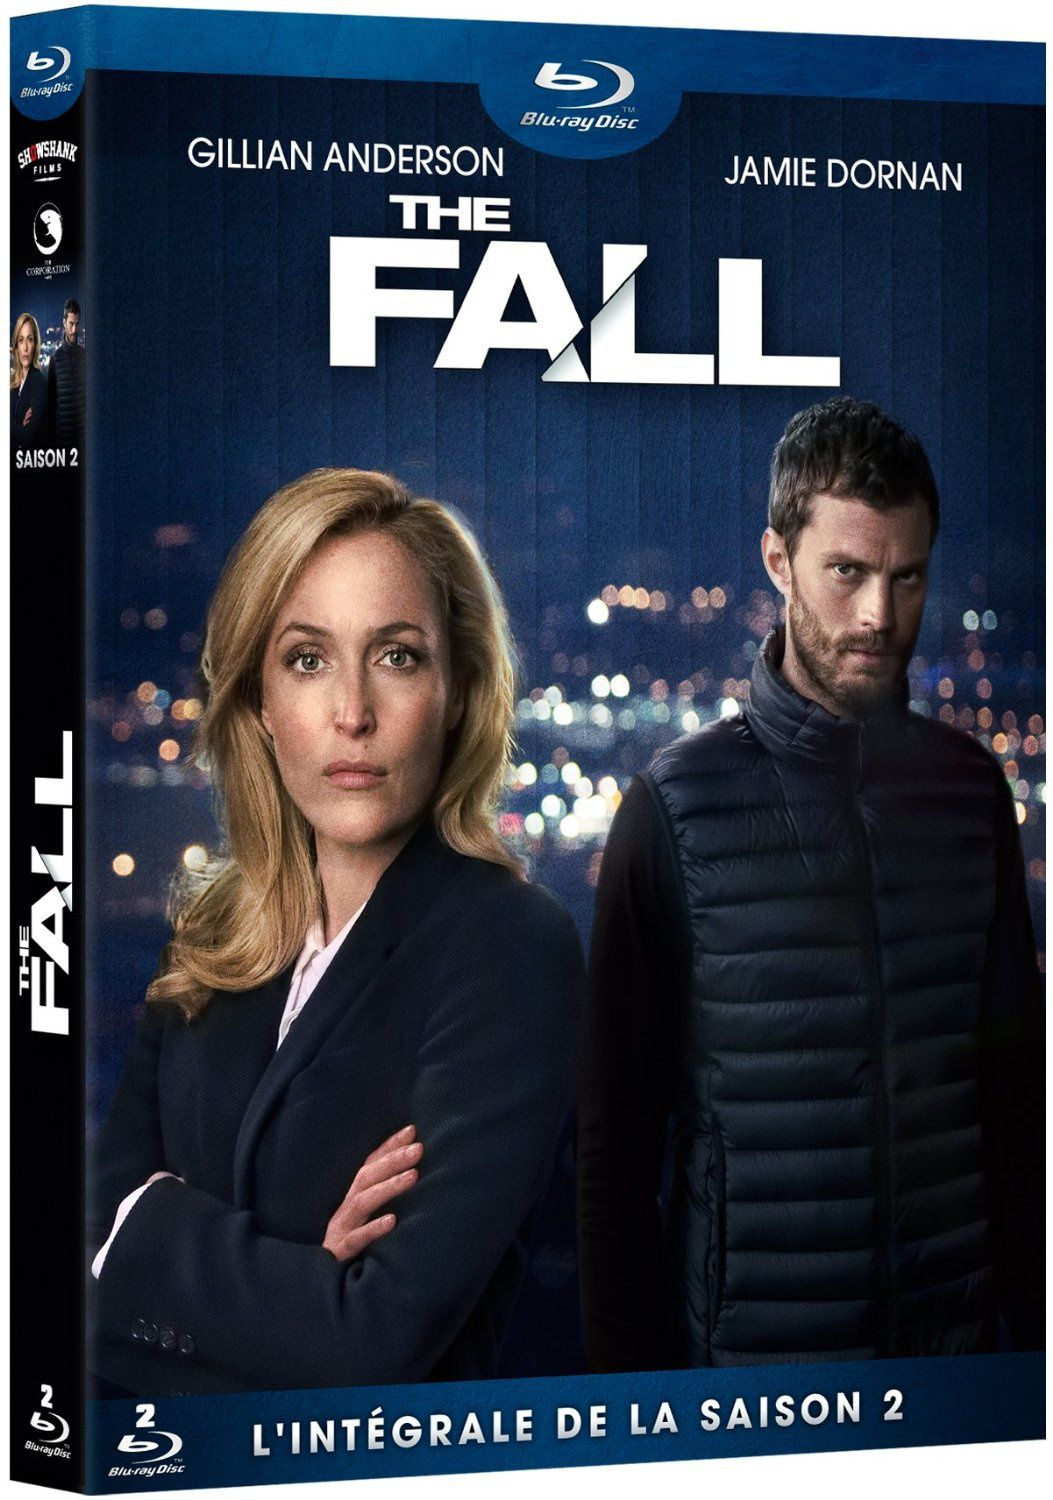 The fall saison 2 en dvd/blu-ray (avec Gillian Anderson)